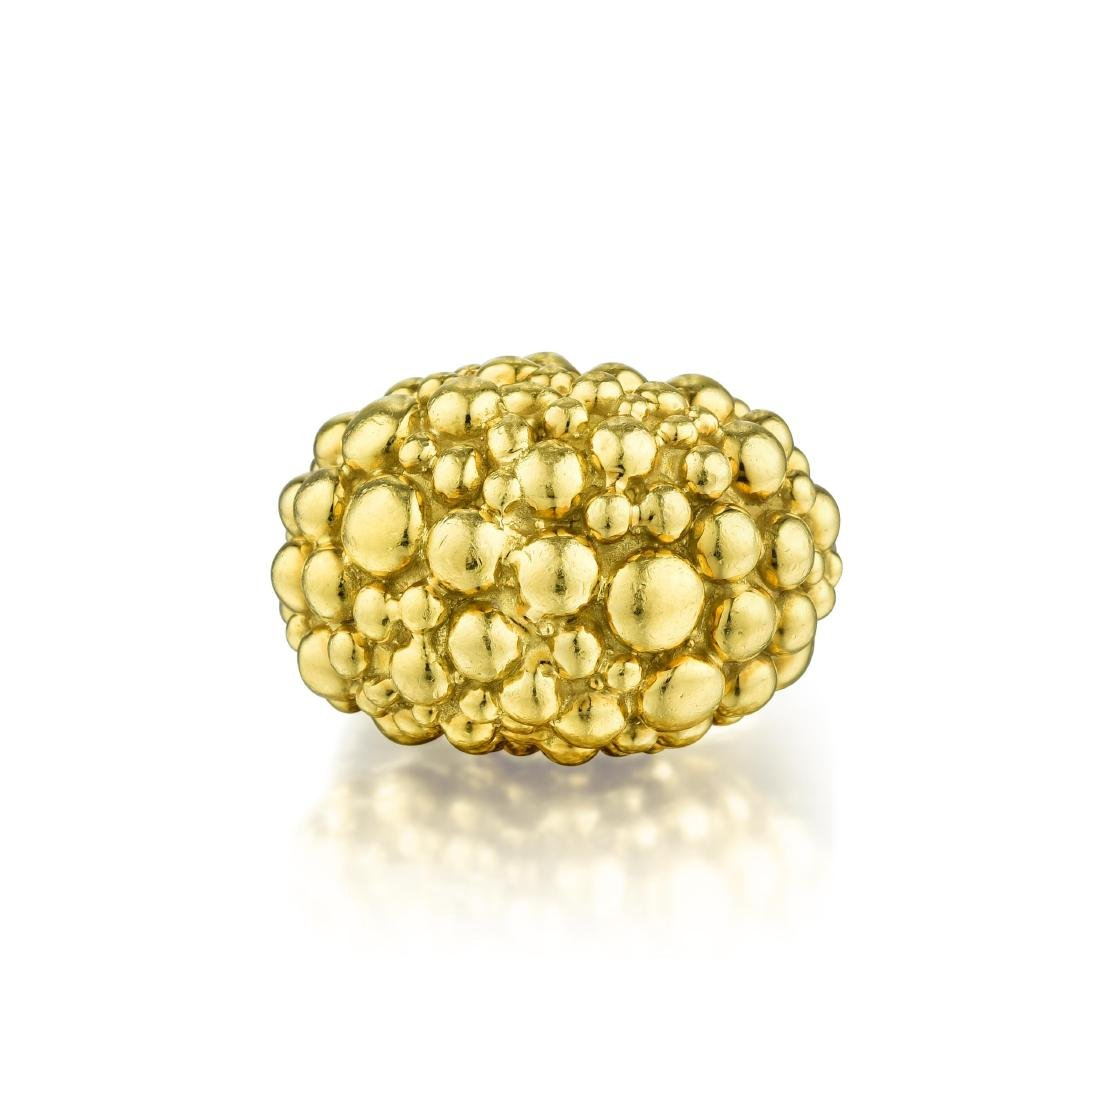 David Webb Gold Ring - Feb 13, 2019 | Fortuna Auction in NY